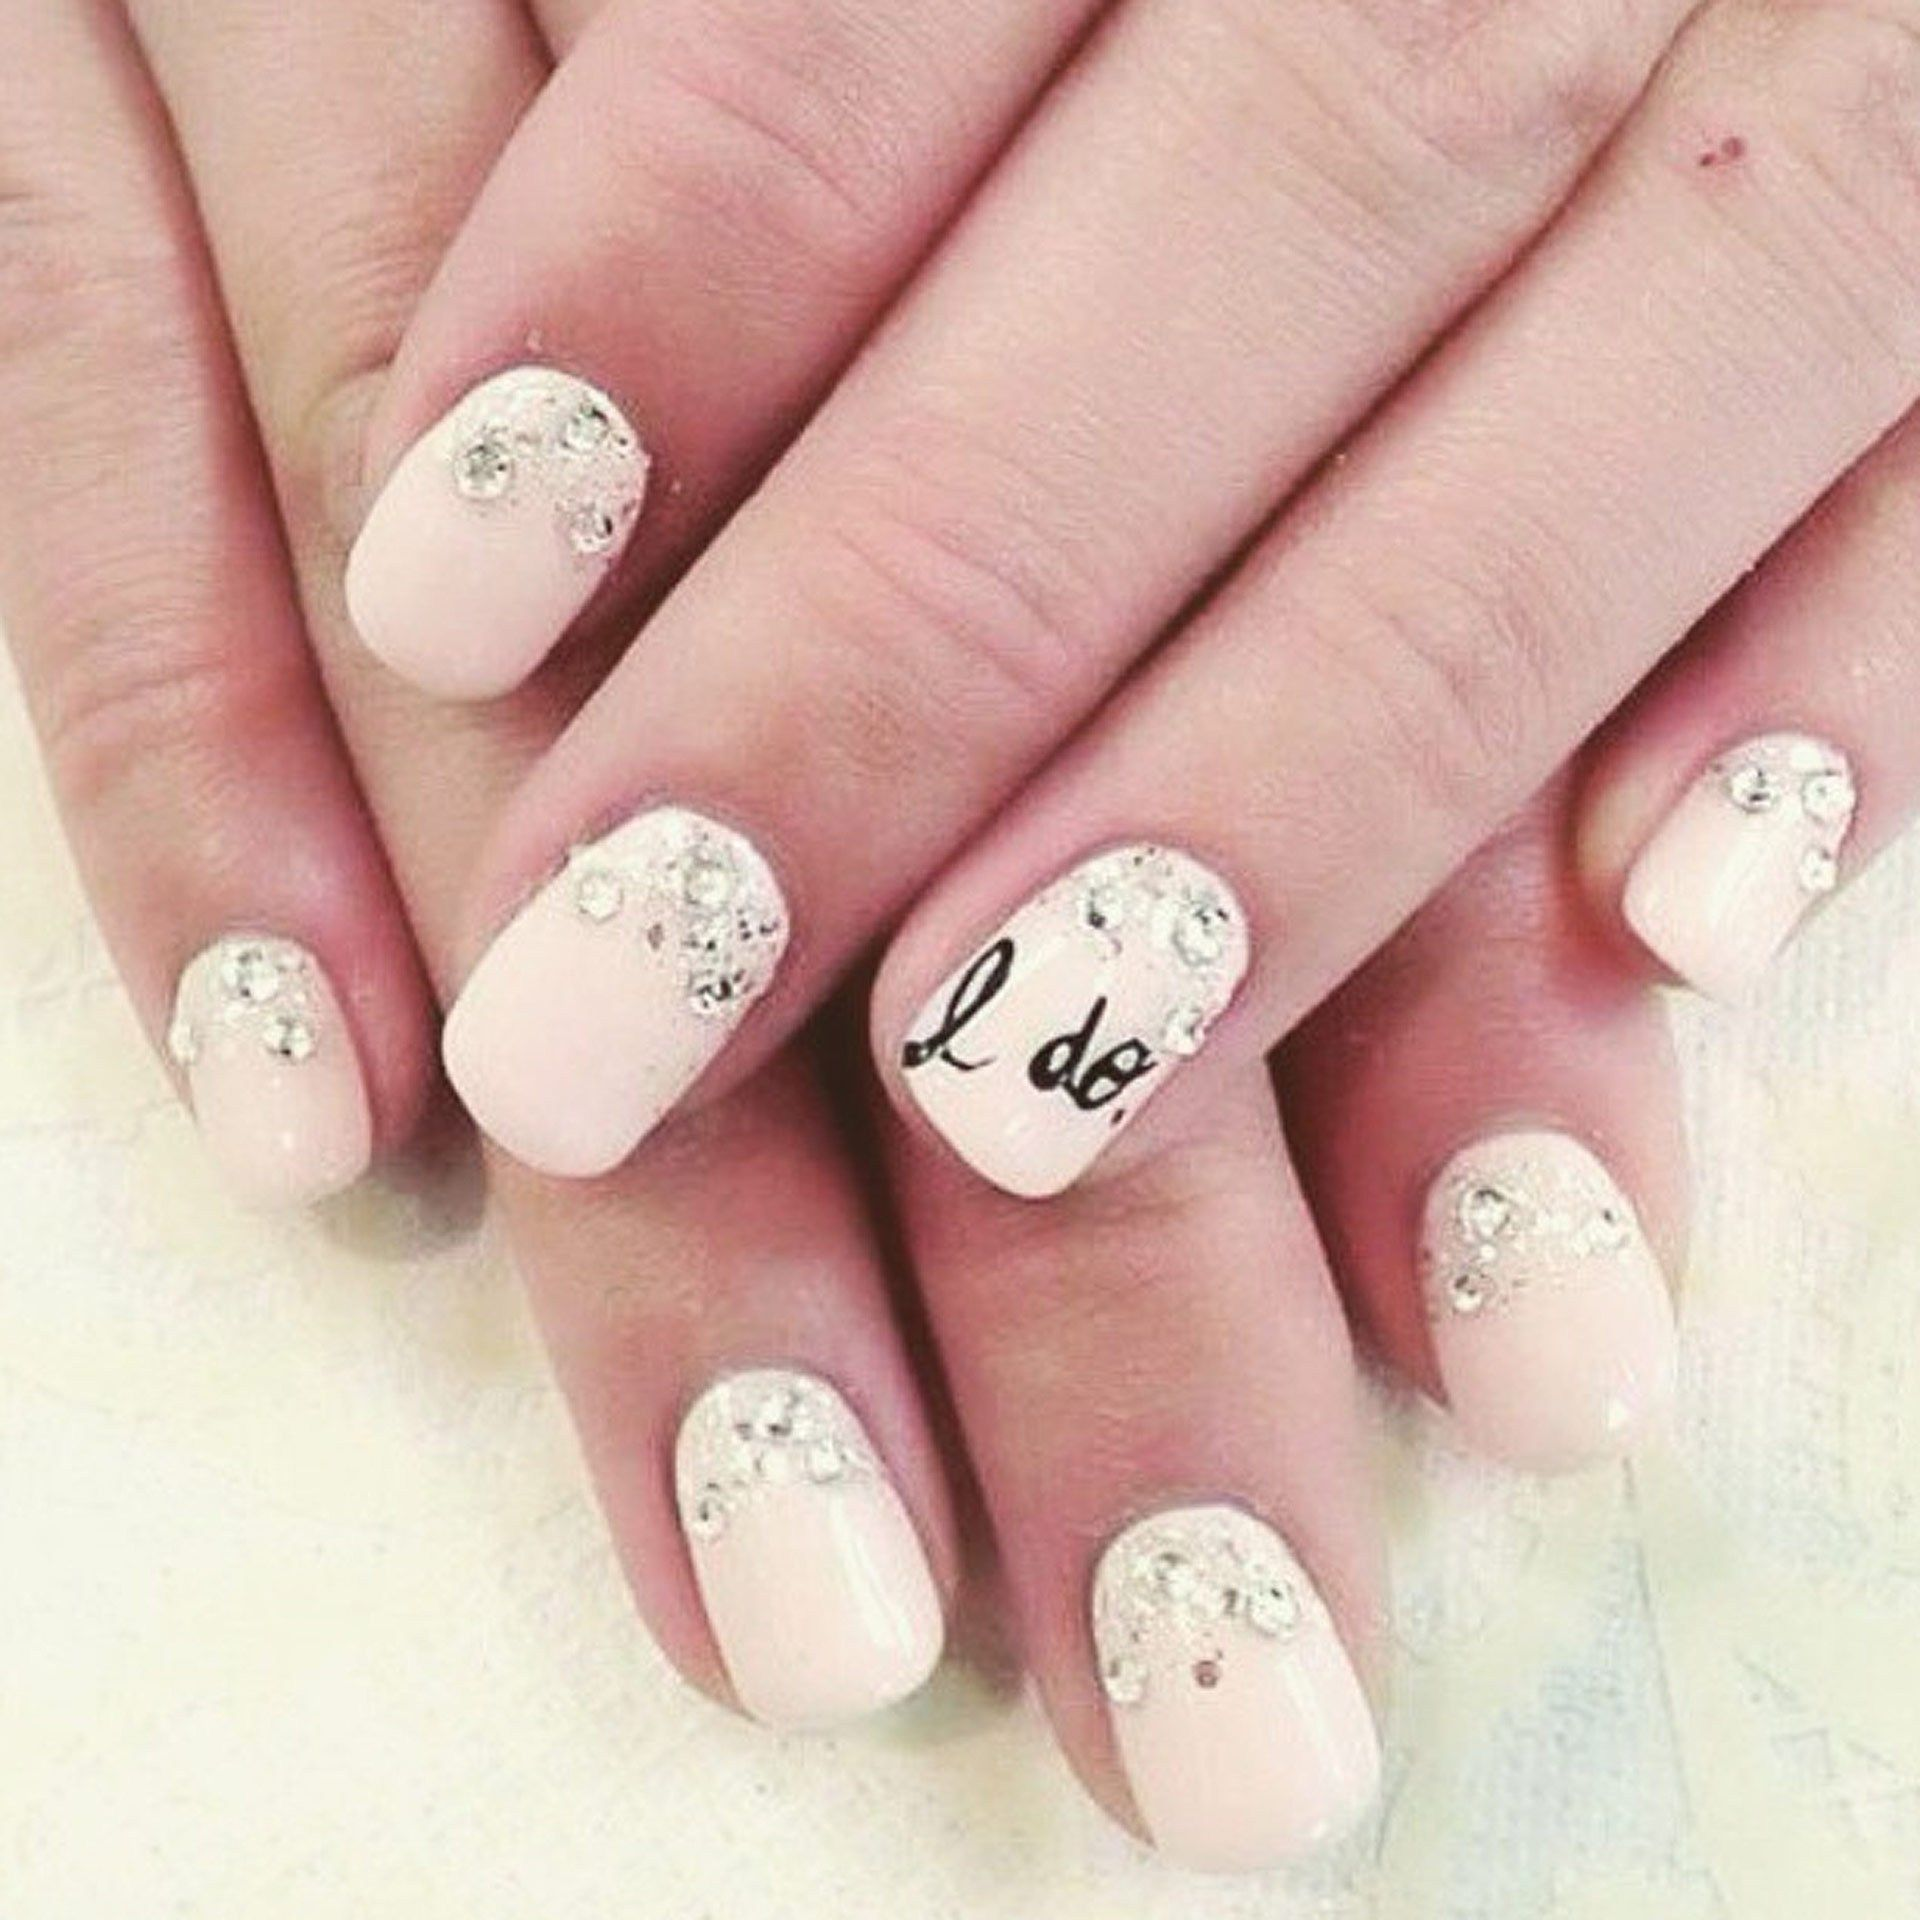 14 Wedding Manicure Accents That Will Add The Touch Of Whimsy ...